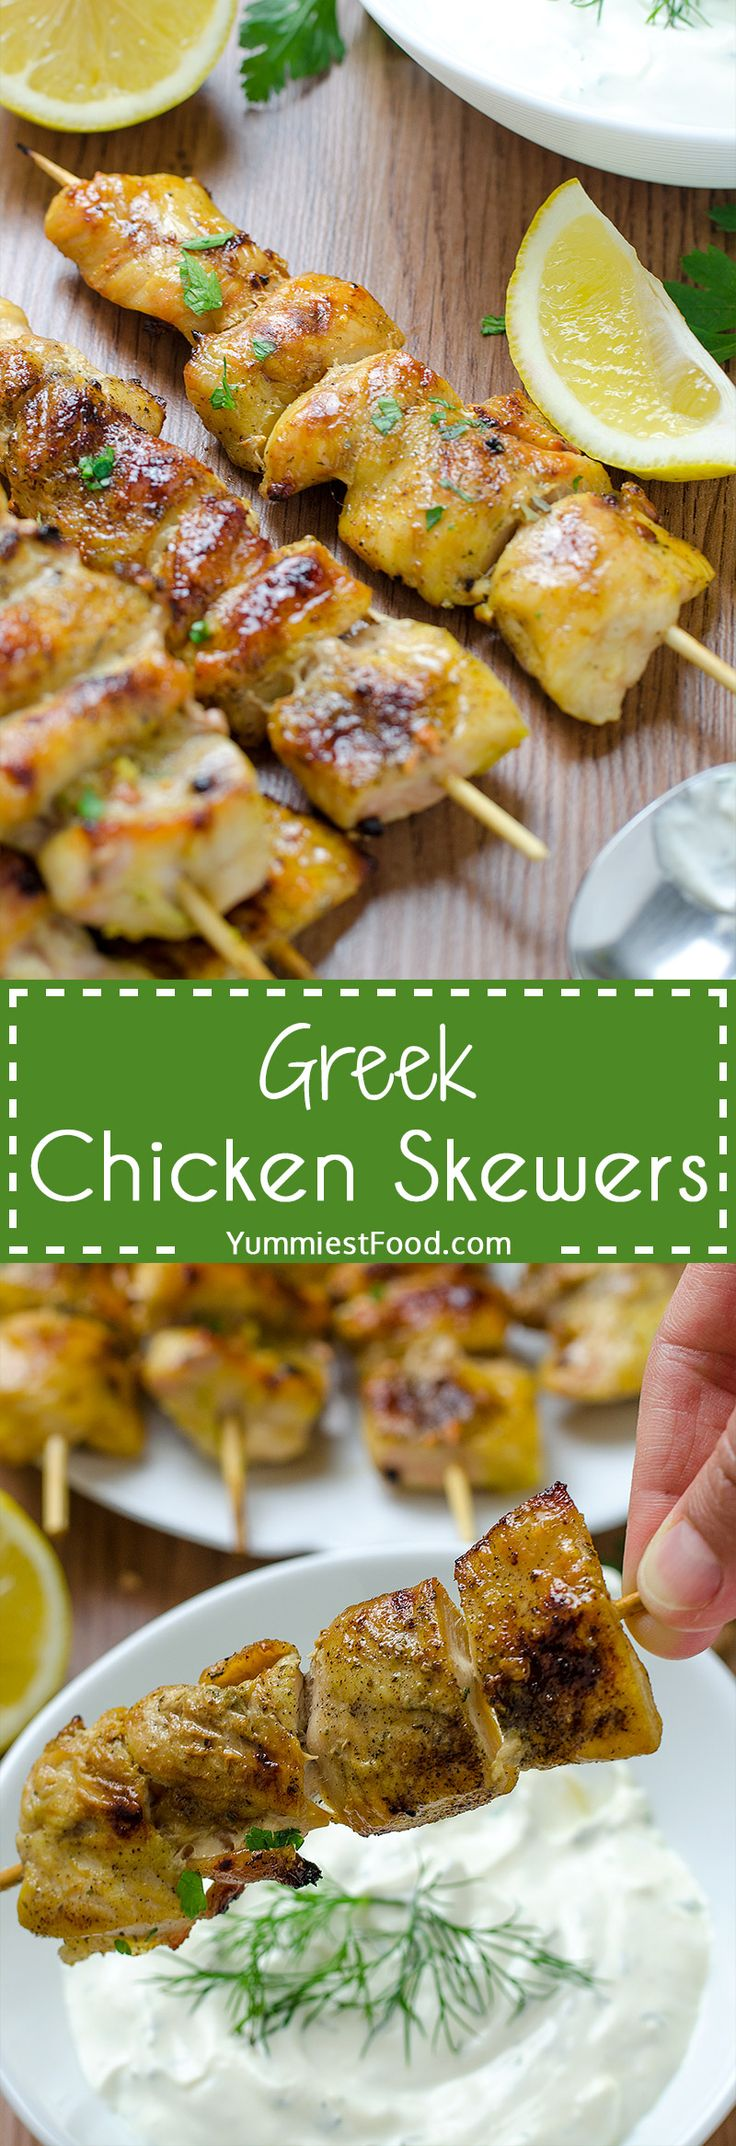 Quick and Easy Greek Chicken Skewers with Homemade Tzatziki Sauce! Bite sized pieces of flavorful Tzartziki sauce! This recipe is perfectly delicious and it is ideal for these summer days! Greek Chicken Skewers with Homemade Tzatziki Sauce - Easy to cook and easy to love!